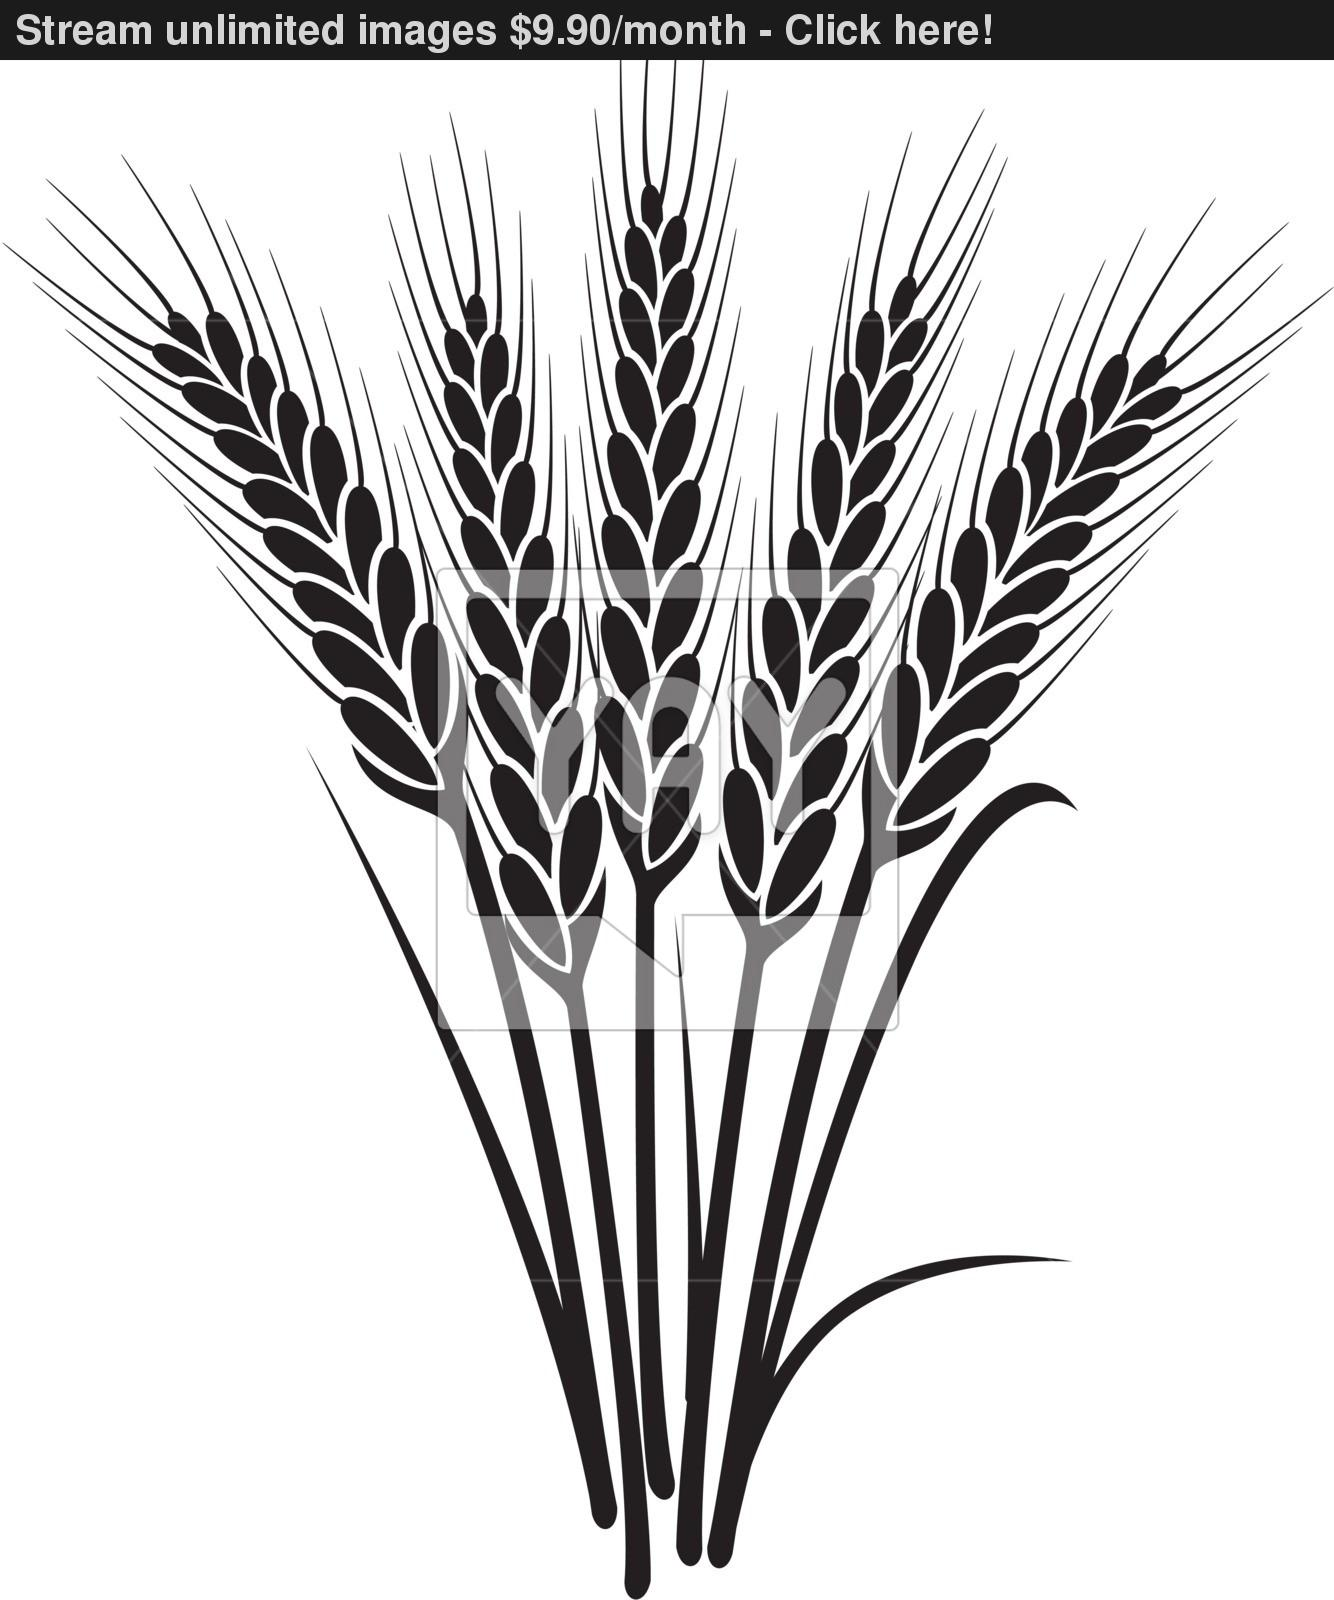 1334x1600 Vector Black And White Bunch Of Wheat Ears Vector